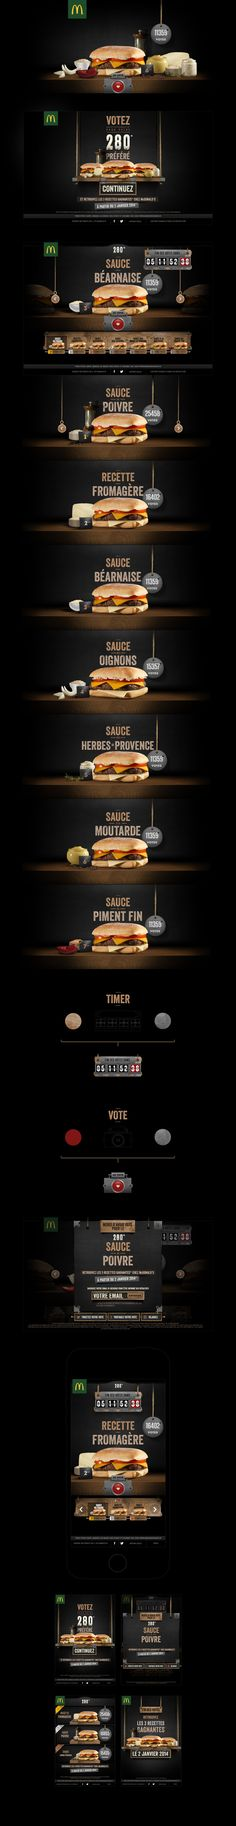 Mc Donald's Best 280 vote on Behance by The APK